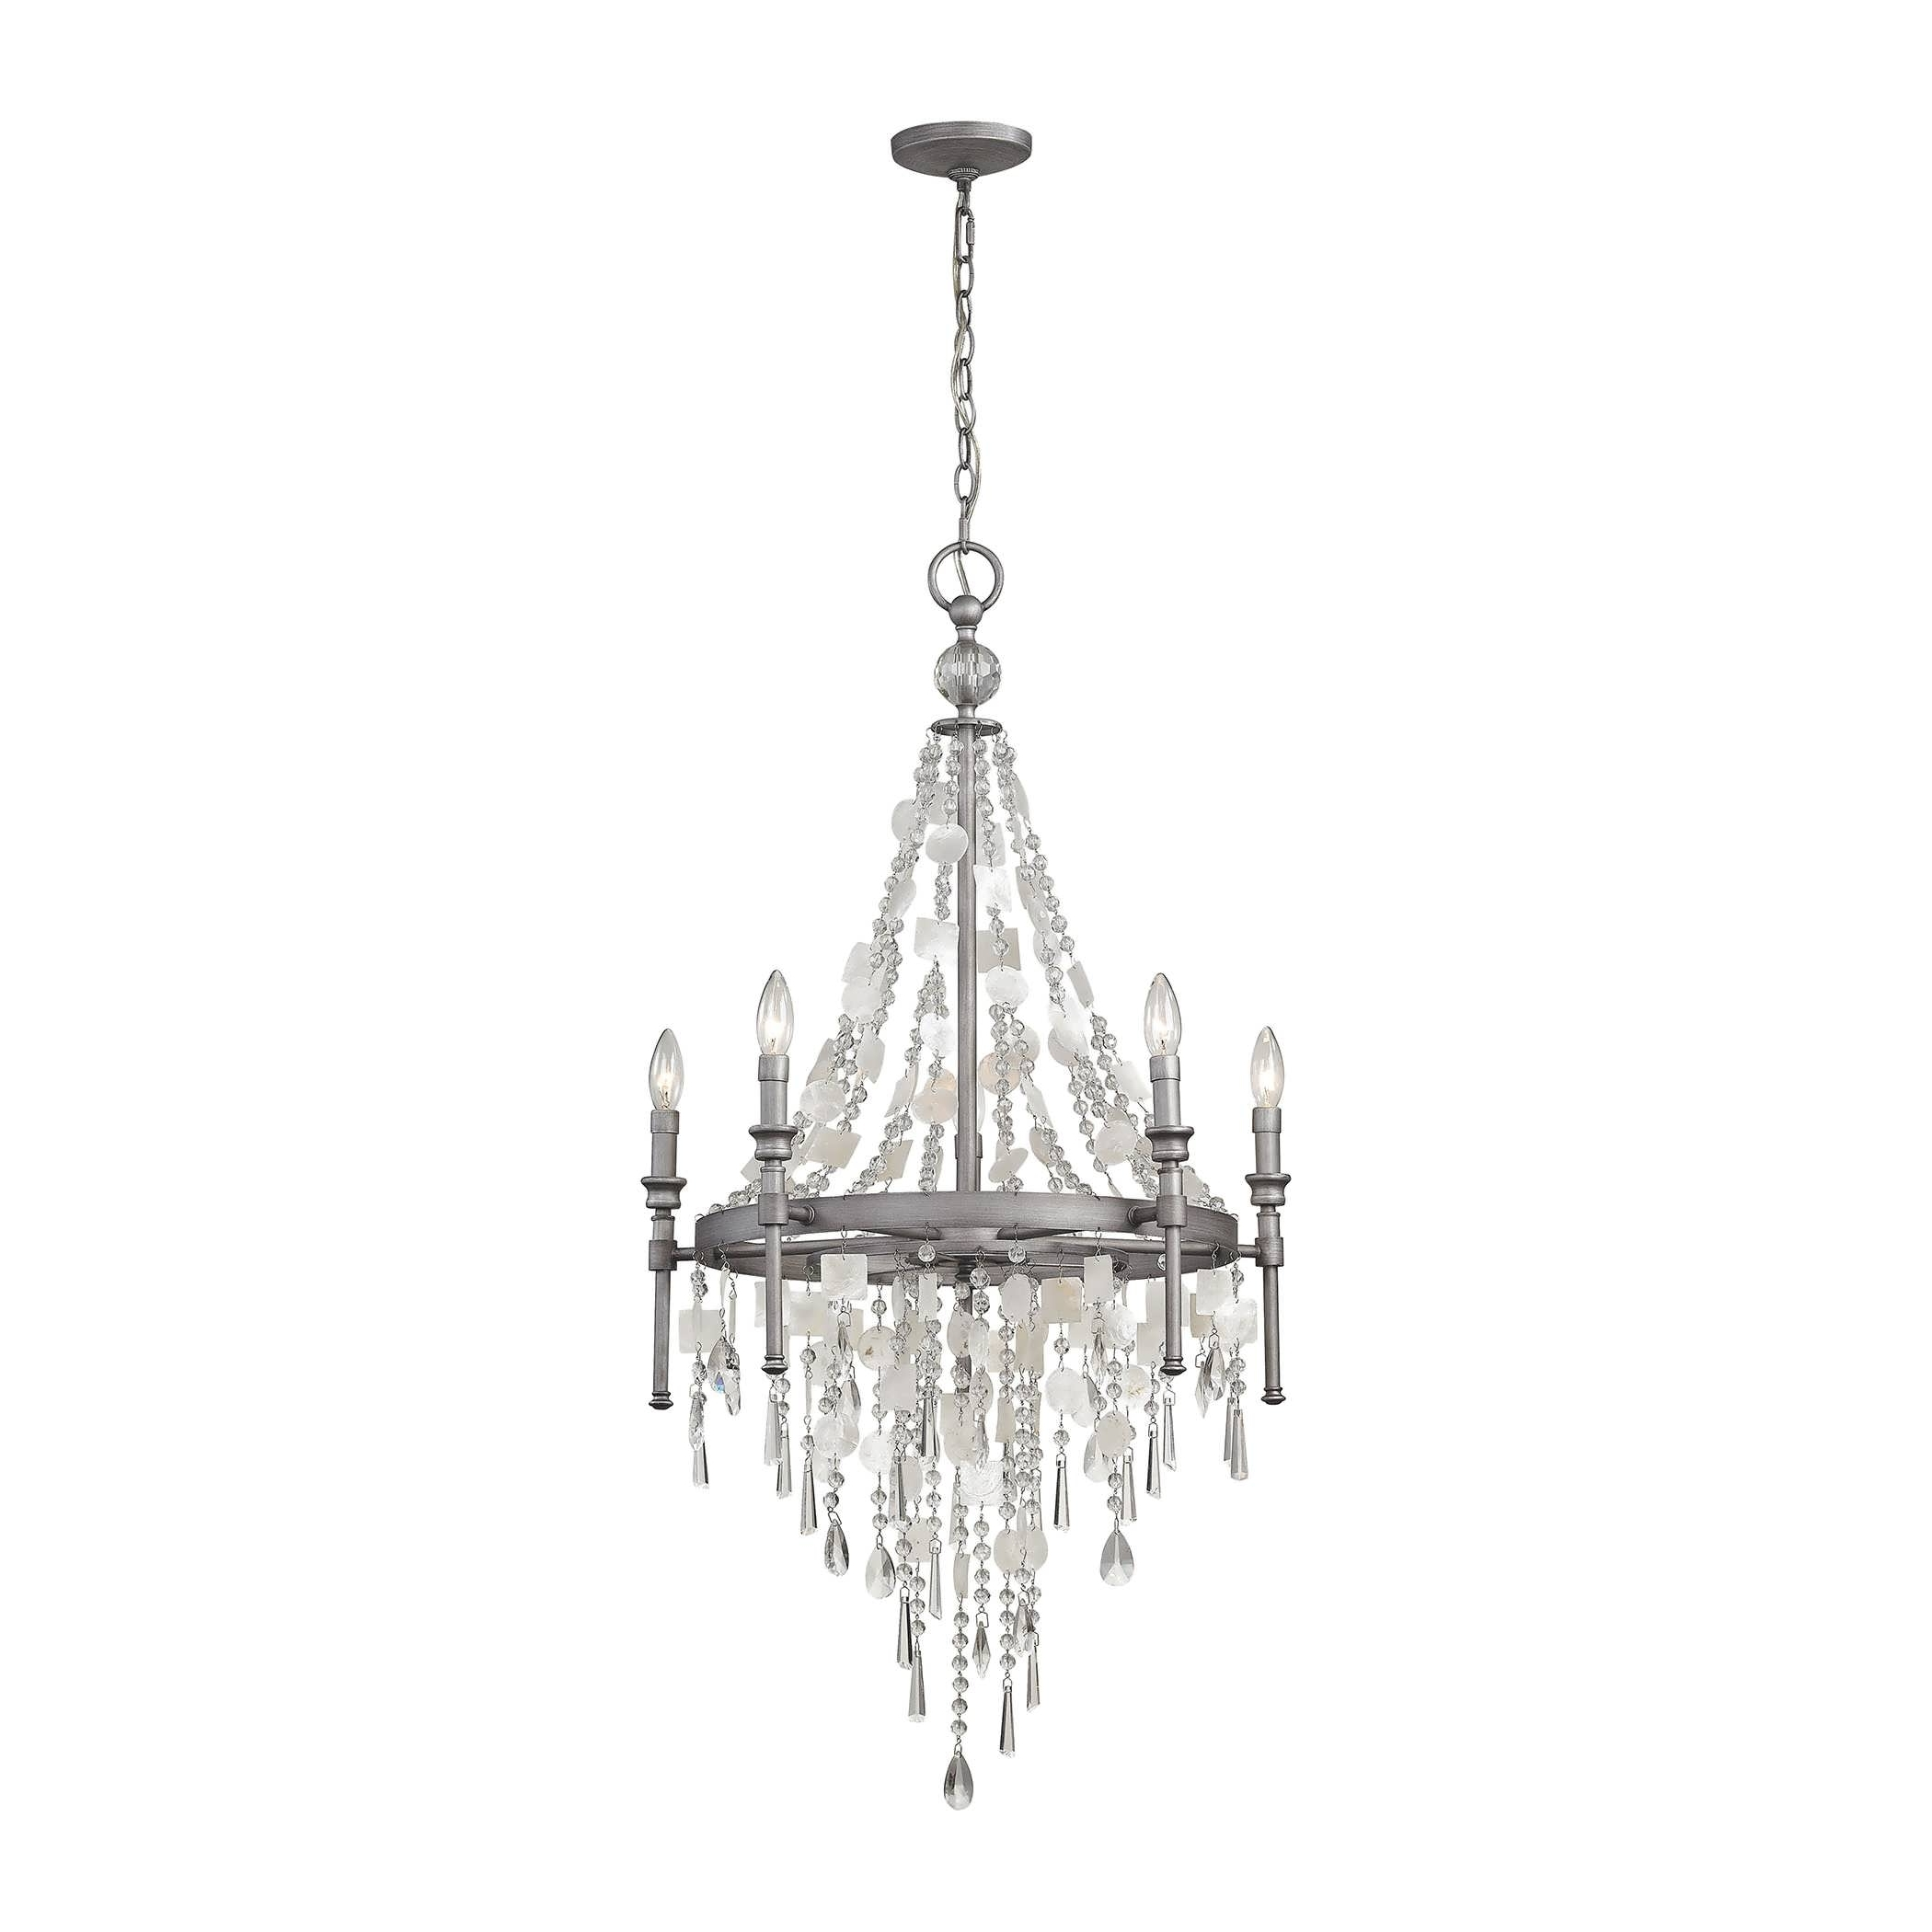 Well Known Small Crystal Chandelier Table Lamps Intended For Chandeliers Design : Amazing Affordable Chandeliers Small Crystal (View 19 of 20)